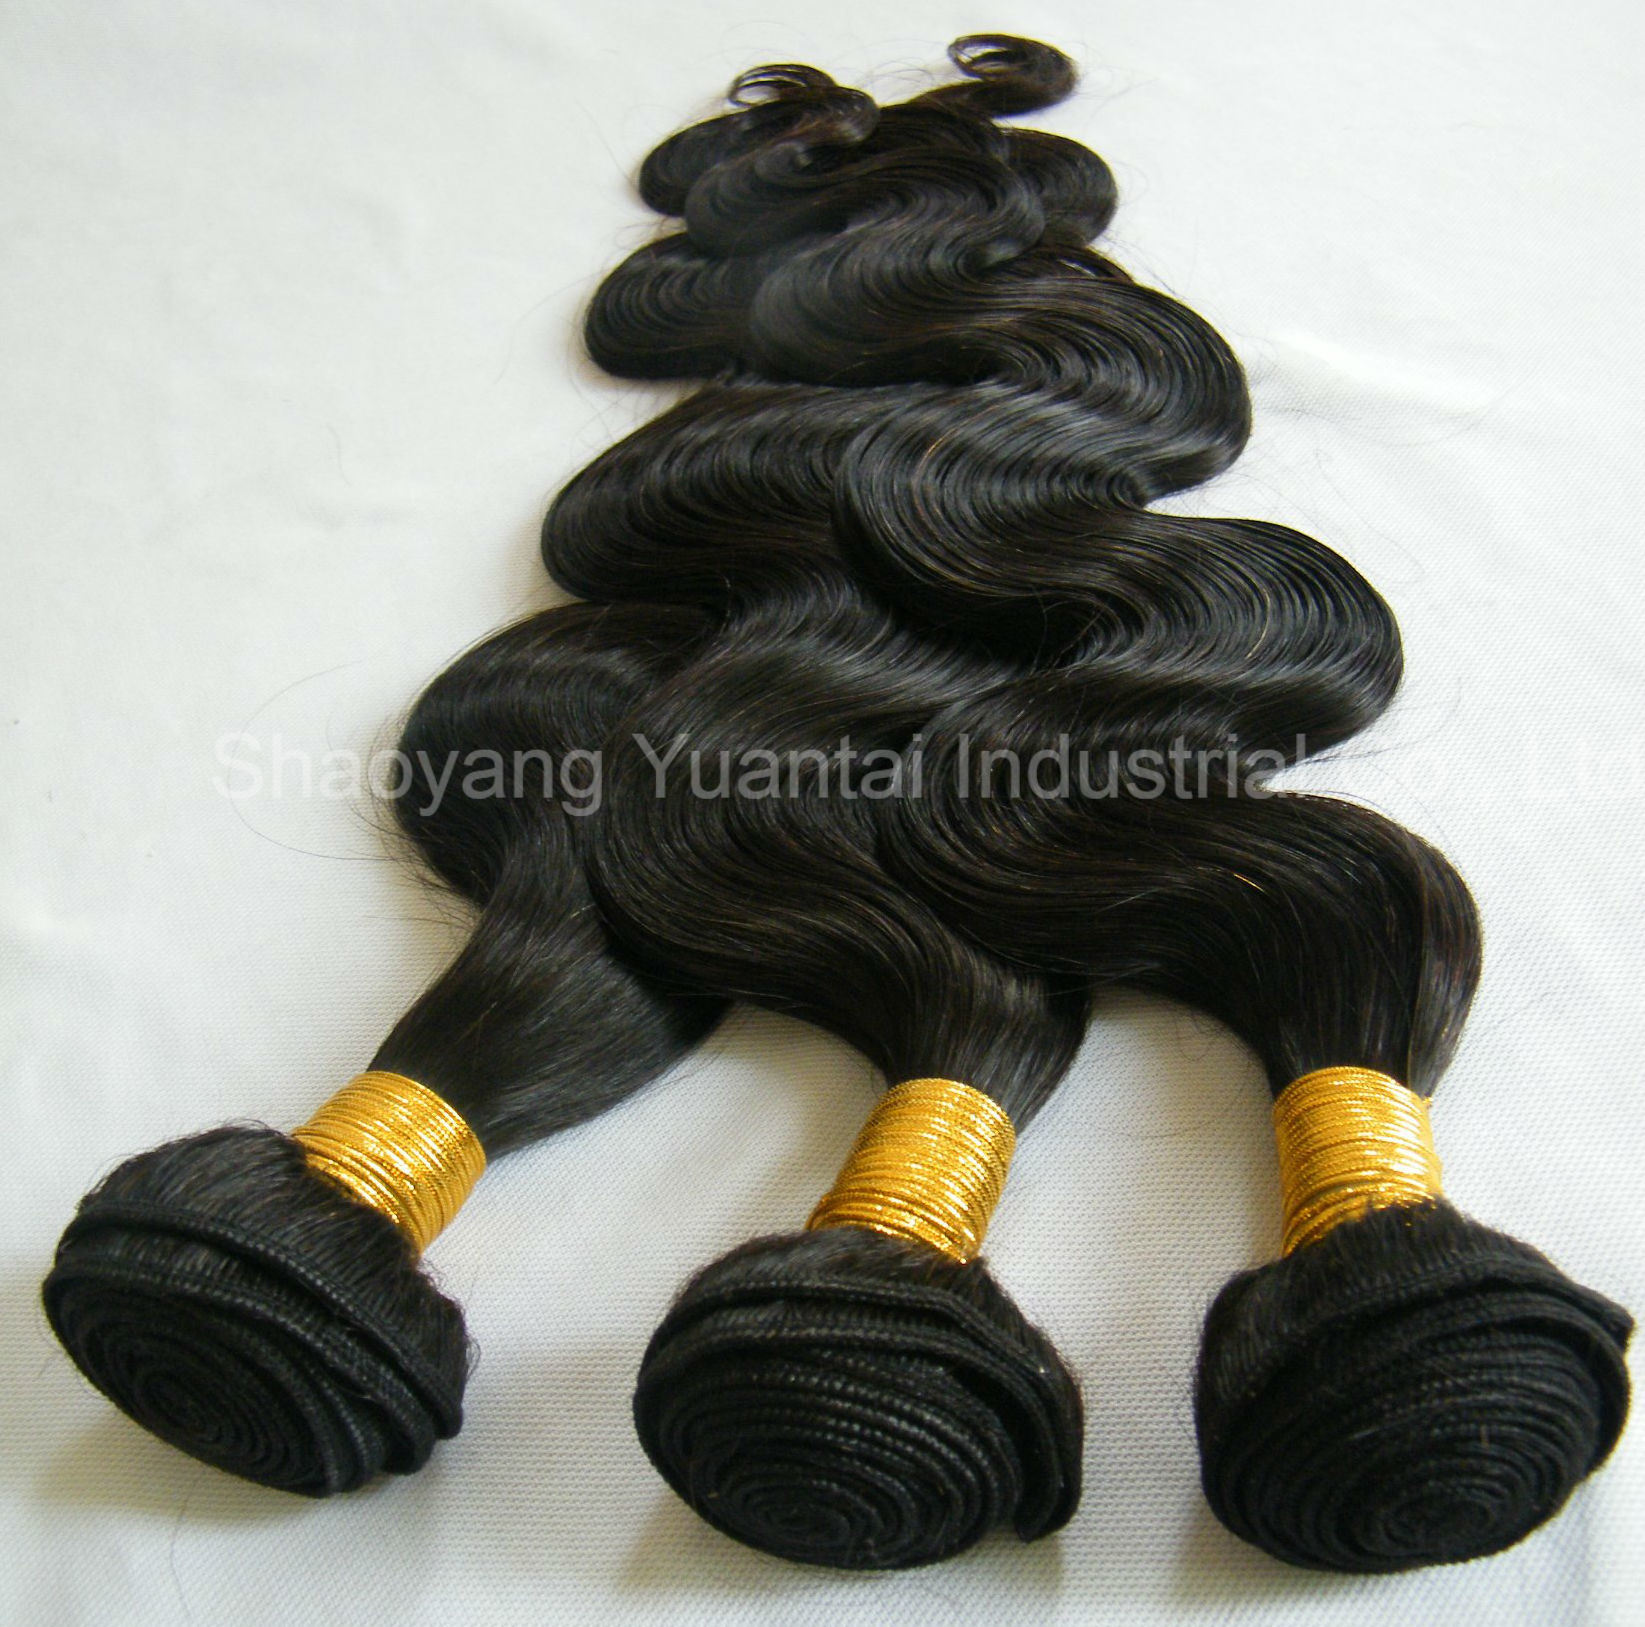 China Human Hair Extensions Product Weft Weavingclip In Hair